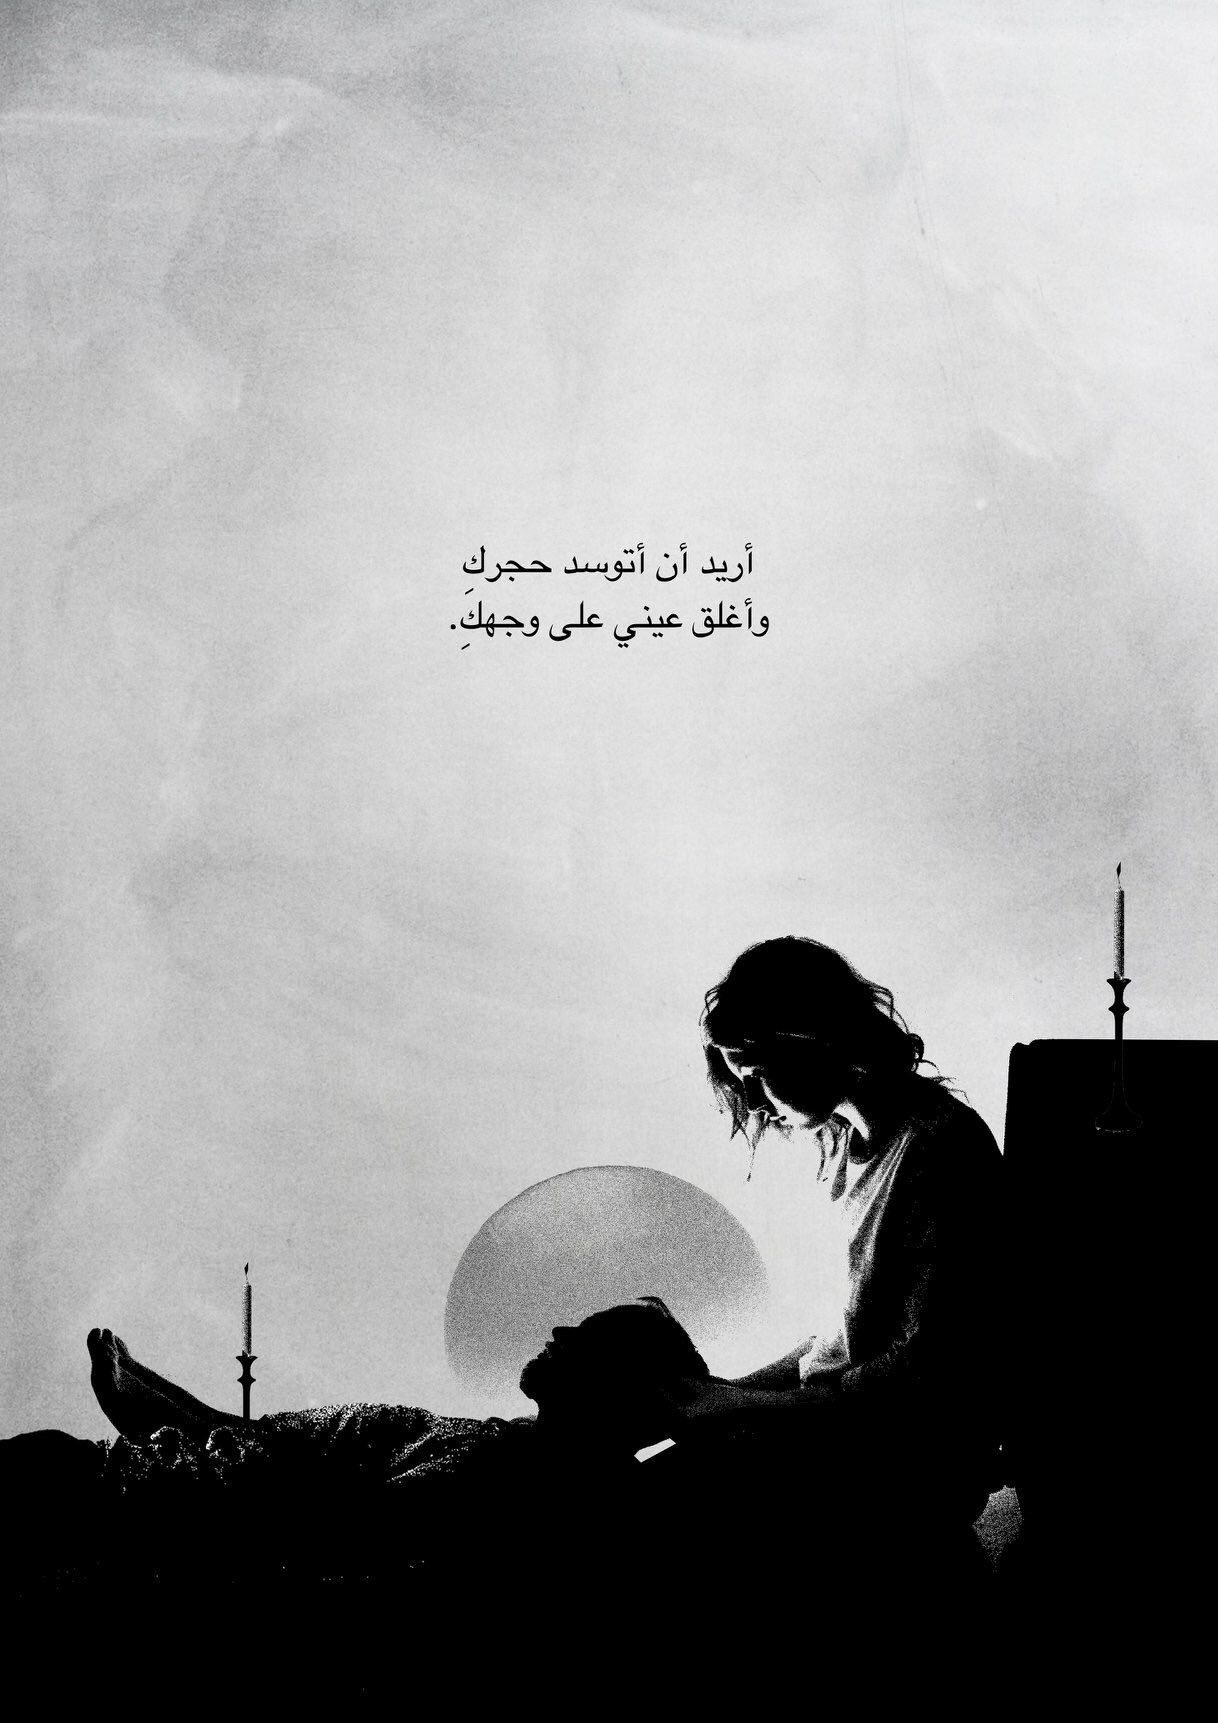 Lines quotes arabic words arabic quotes music aesthetic bts jungkook movie